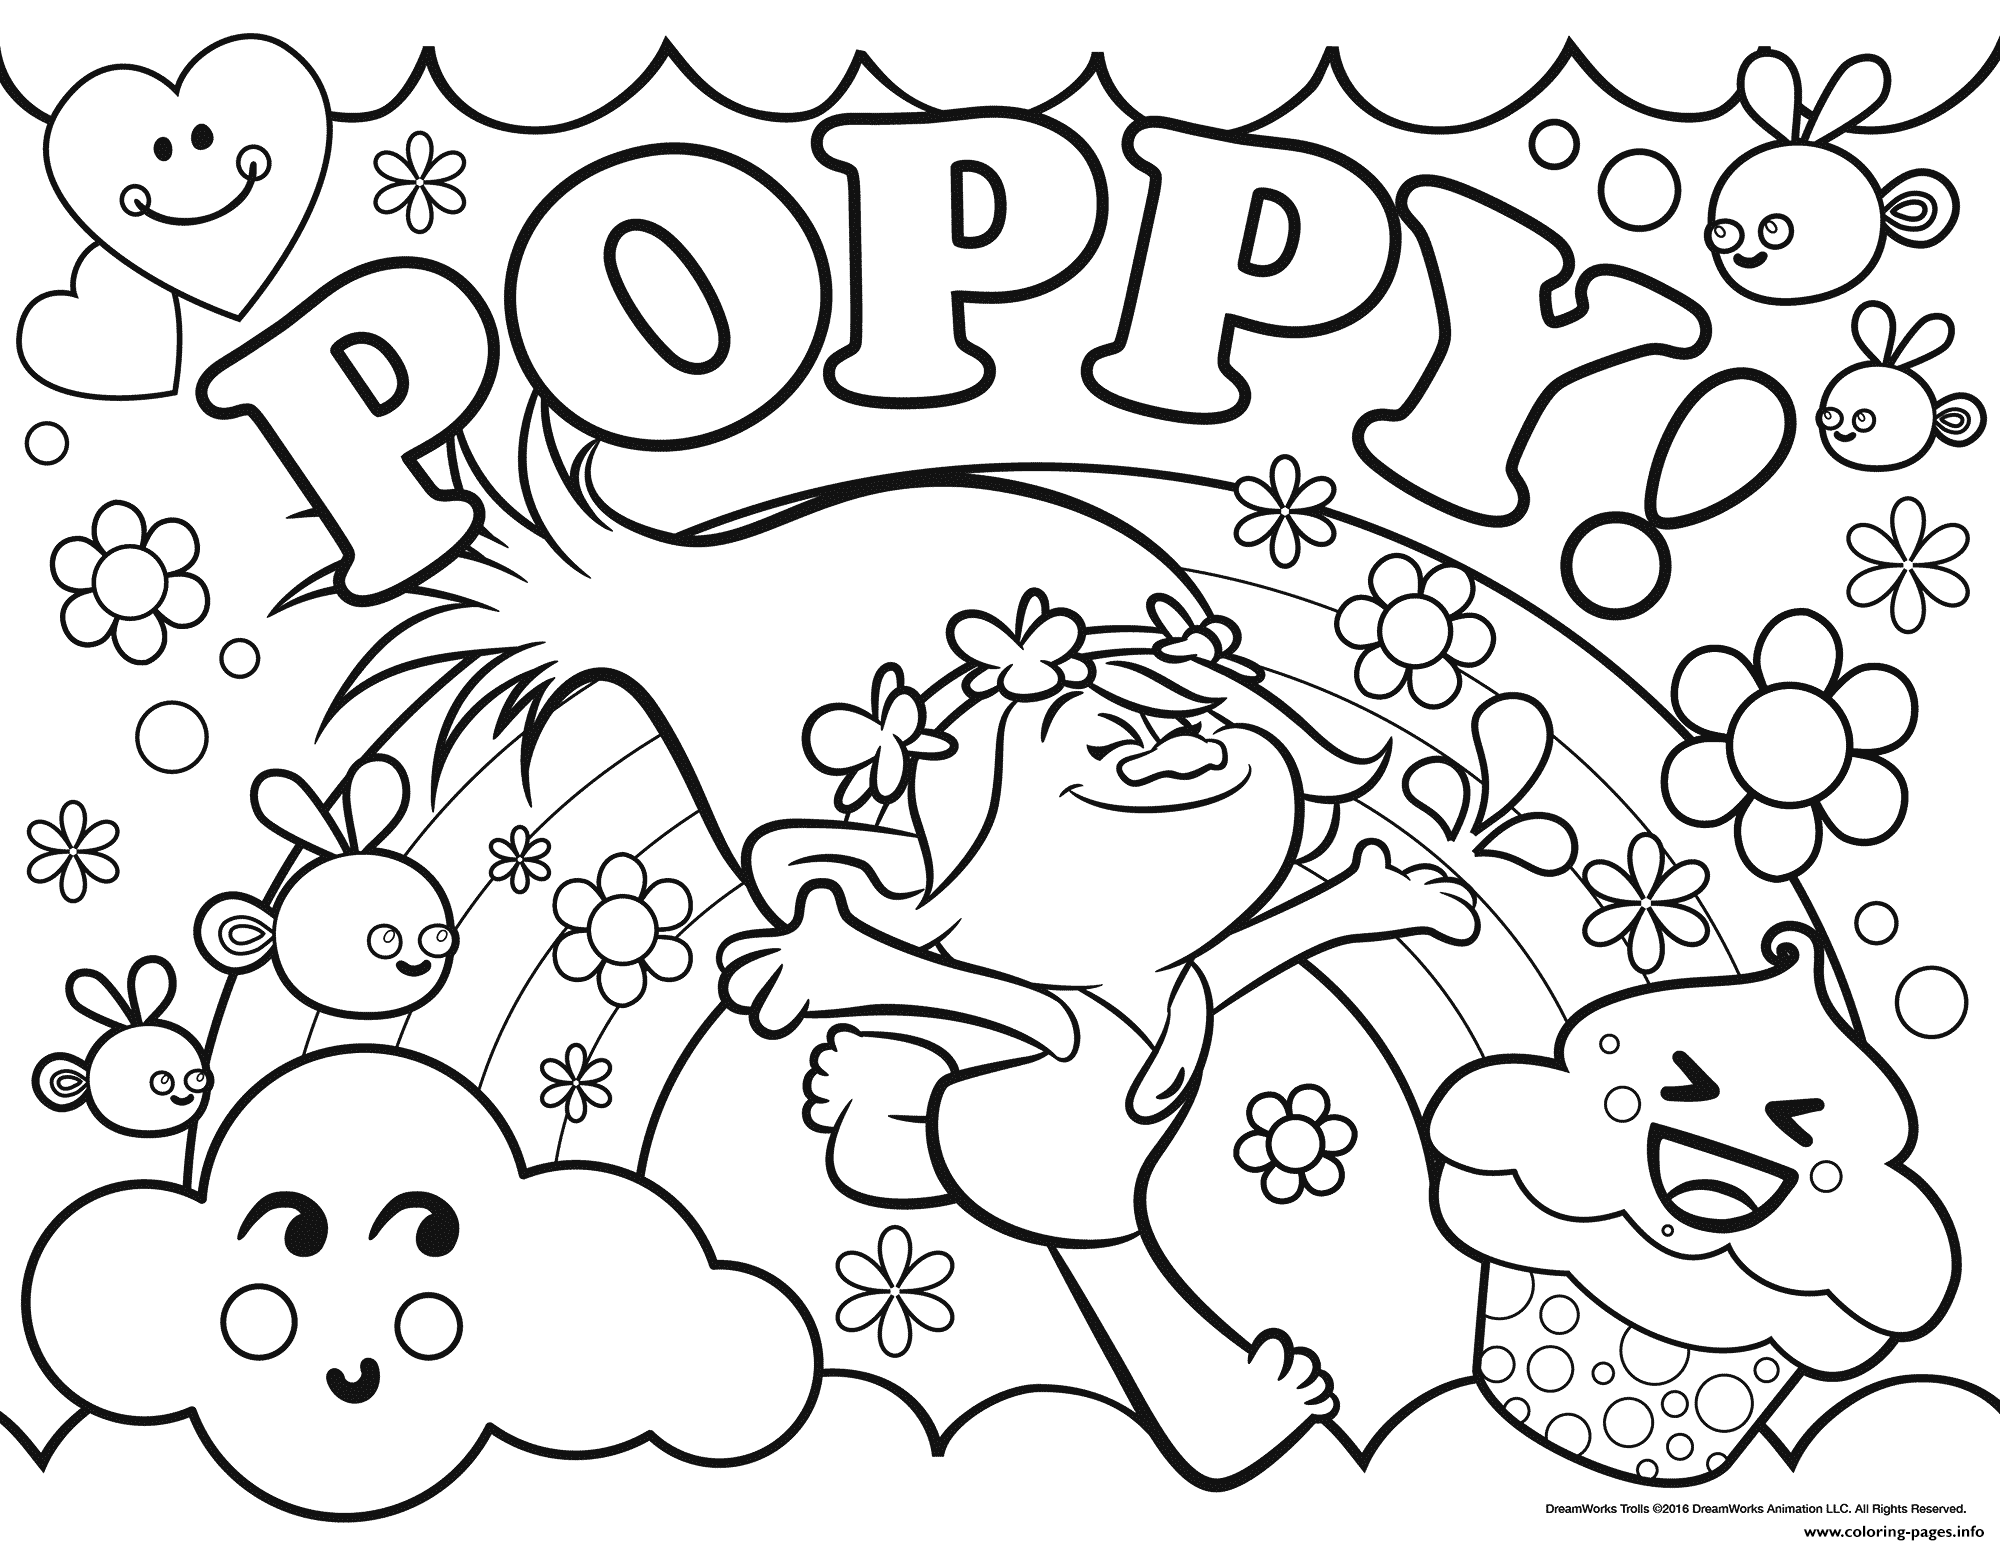 Print Trolls Poppy Coloring Pages Color Time Pinterest